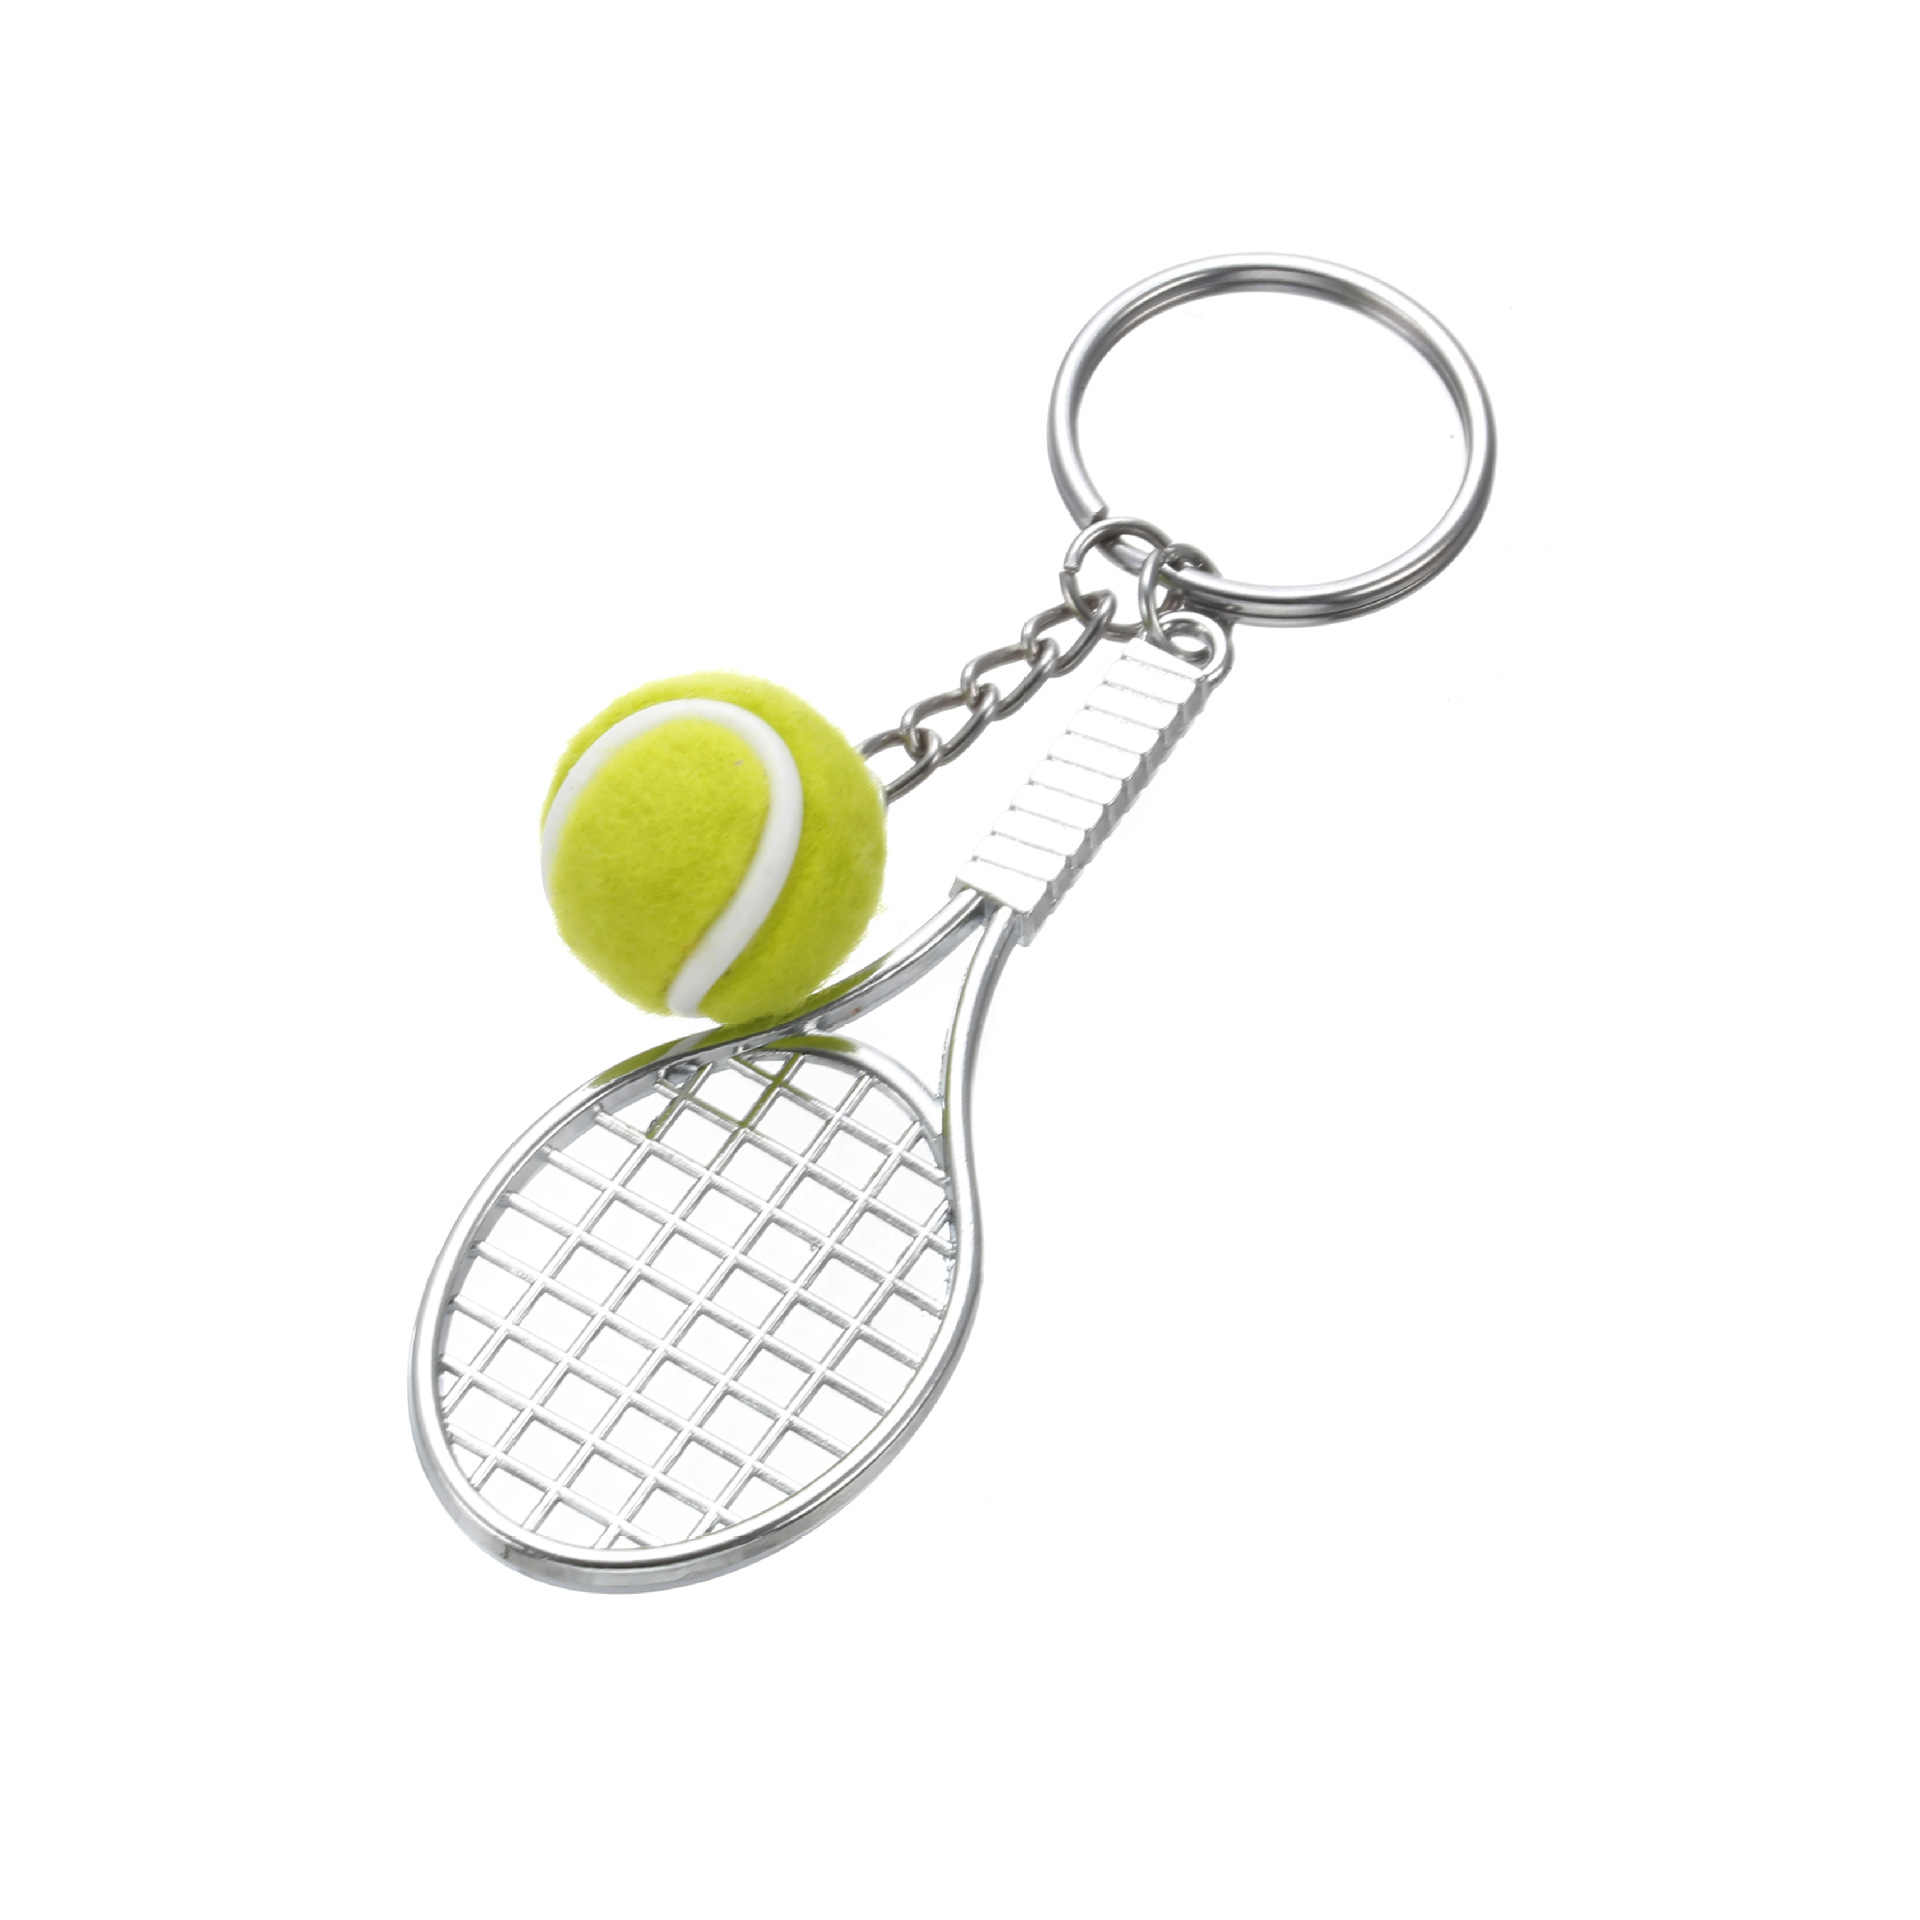 Mini Tennis Cute Keychain Bag Charm Pendant Ball Ornaments Women Men Kids Key Ring Sports Fans Souvenir Birthday Gift Wholesale